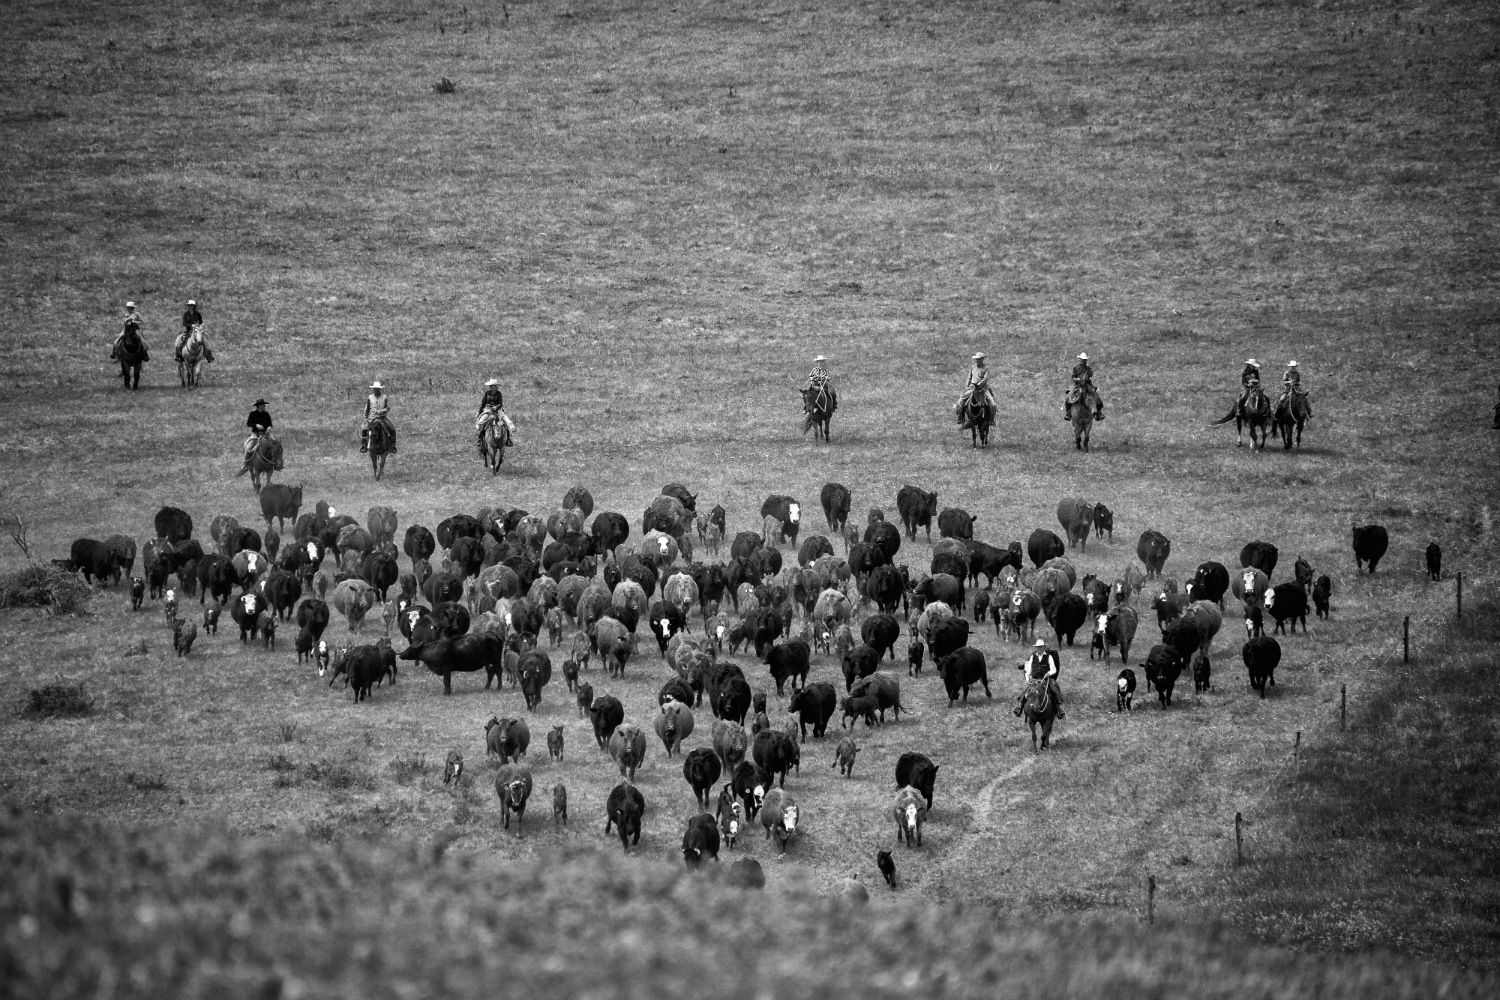 Riders round up a herd of cattle at the ranch.